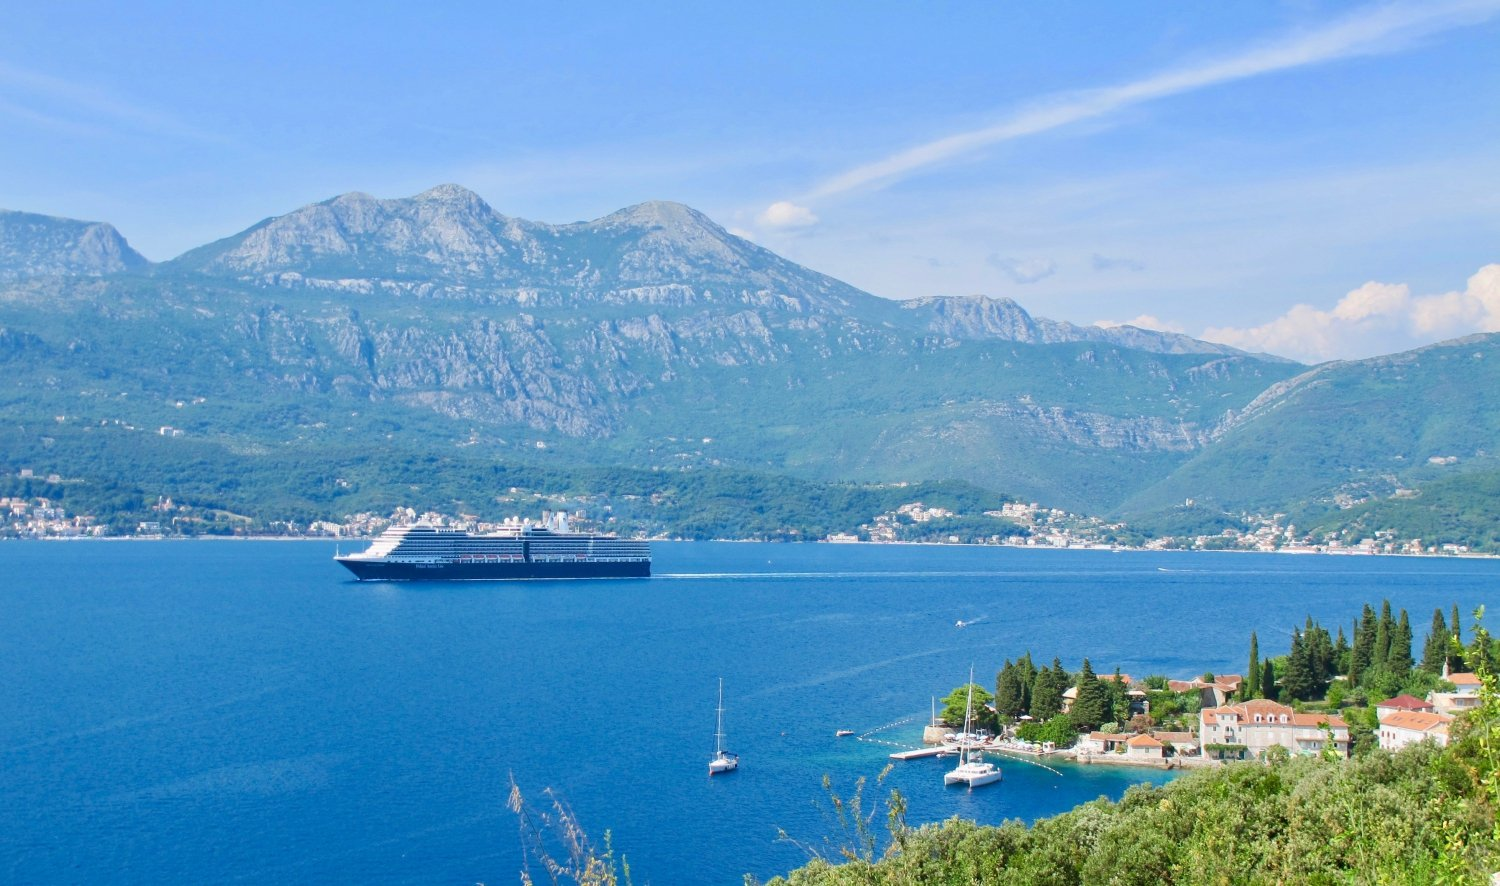 Top Montenegro Sights: Blue Grotto and Mamula Fort